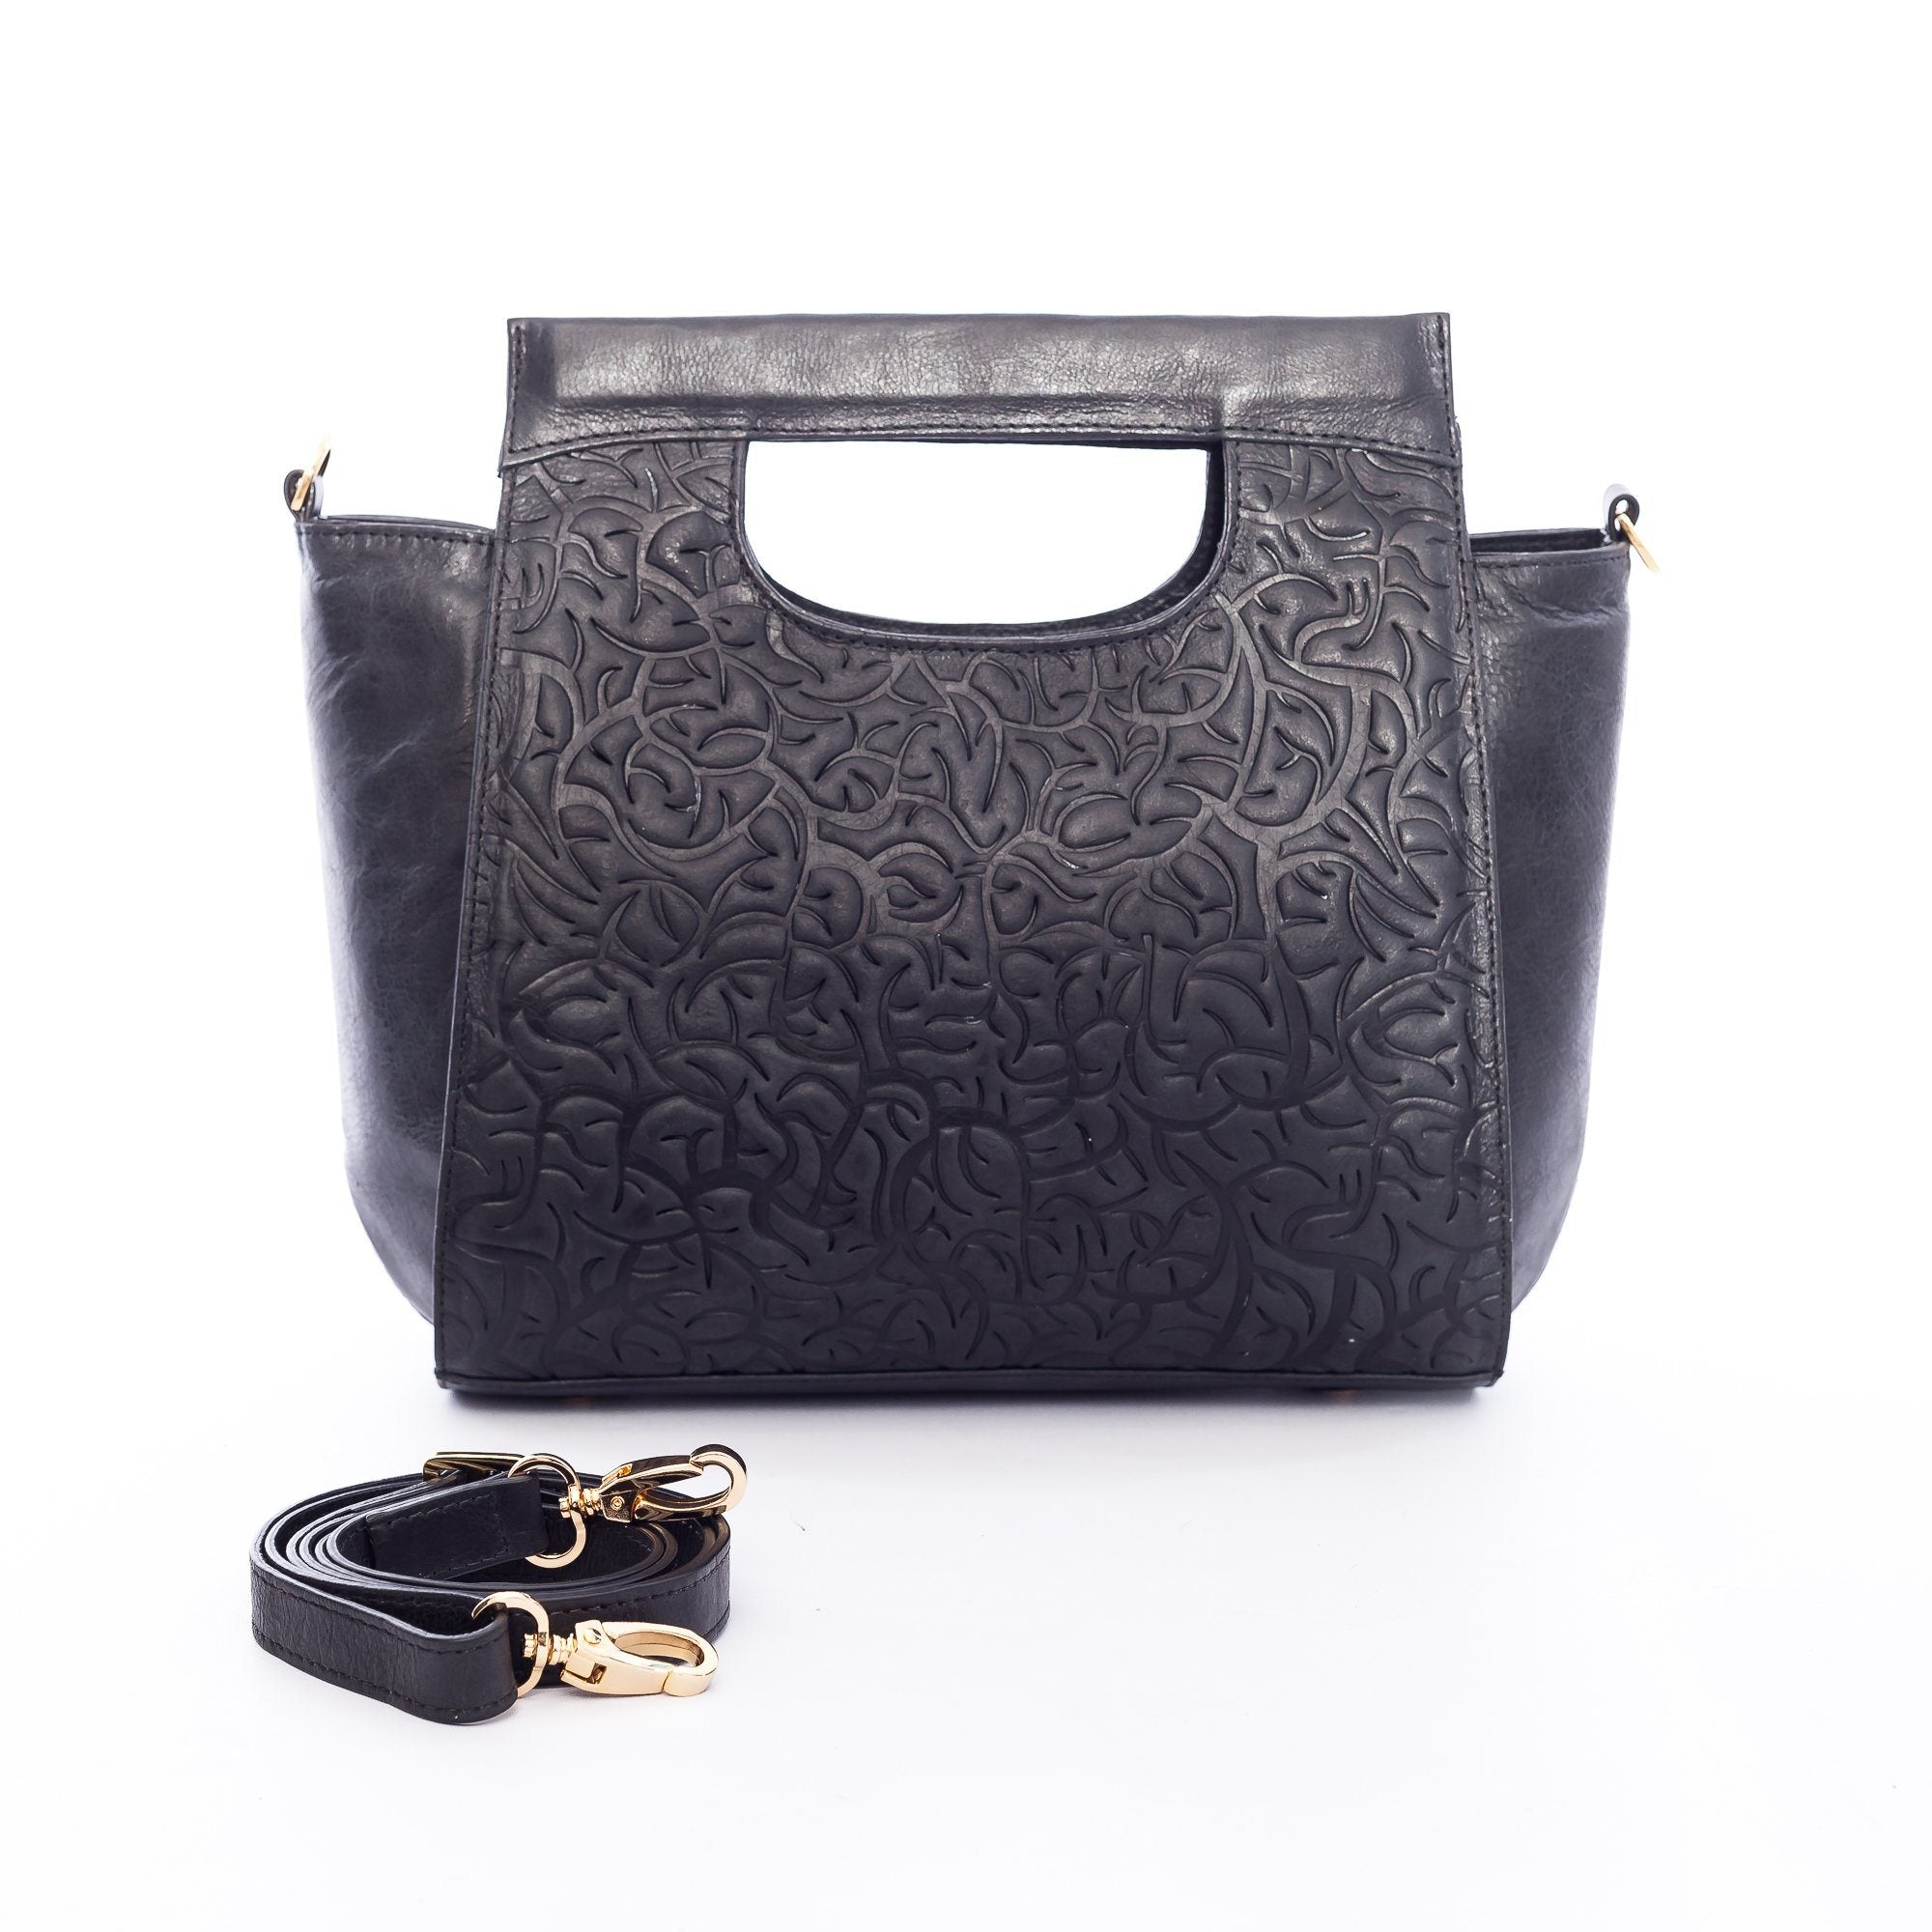 Fiorella Shoulder Bag - The Gaspy Collection